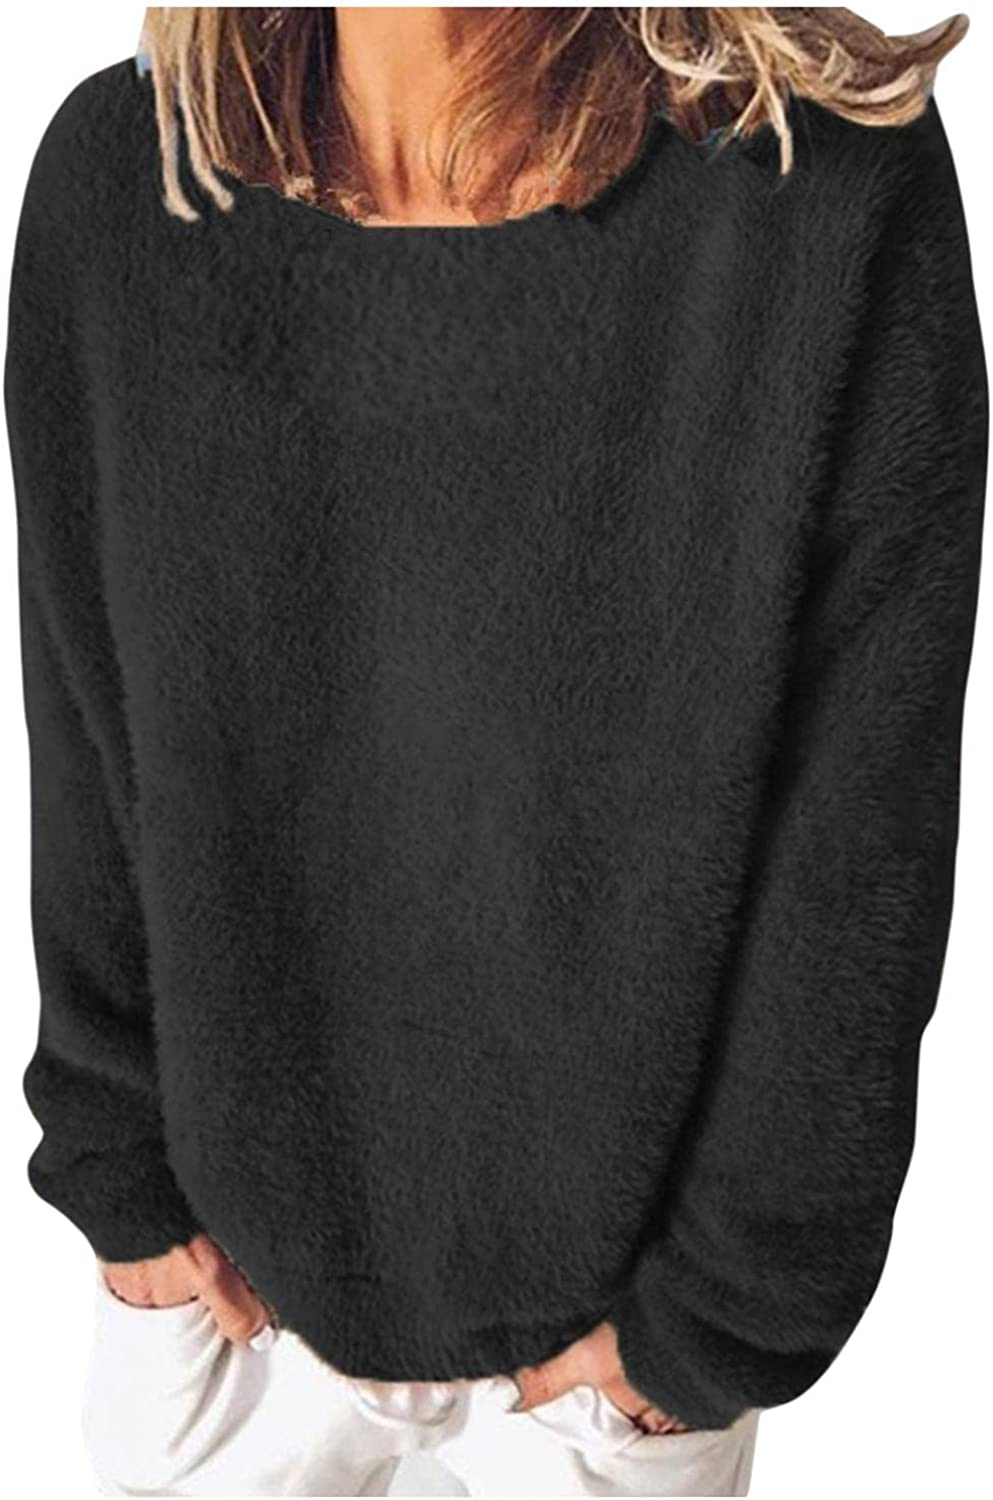 Hemlock Women Solid Color Sweater Tops O Neck Pullover Jumper Long Sleeve Fall Tops Outwear